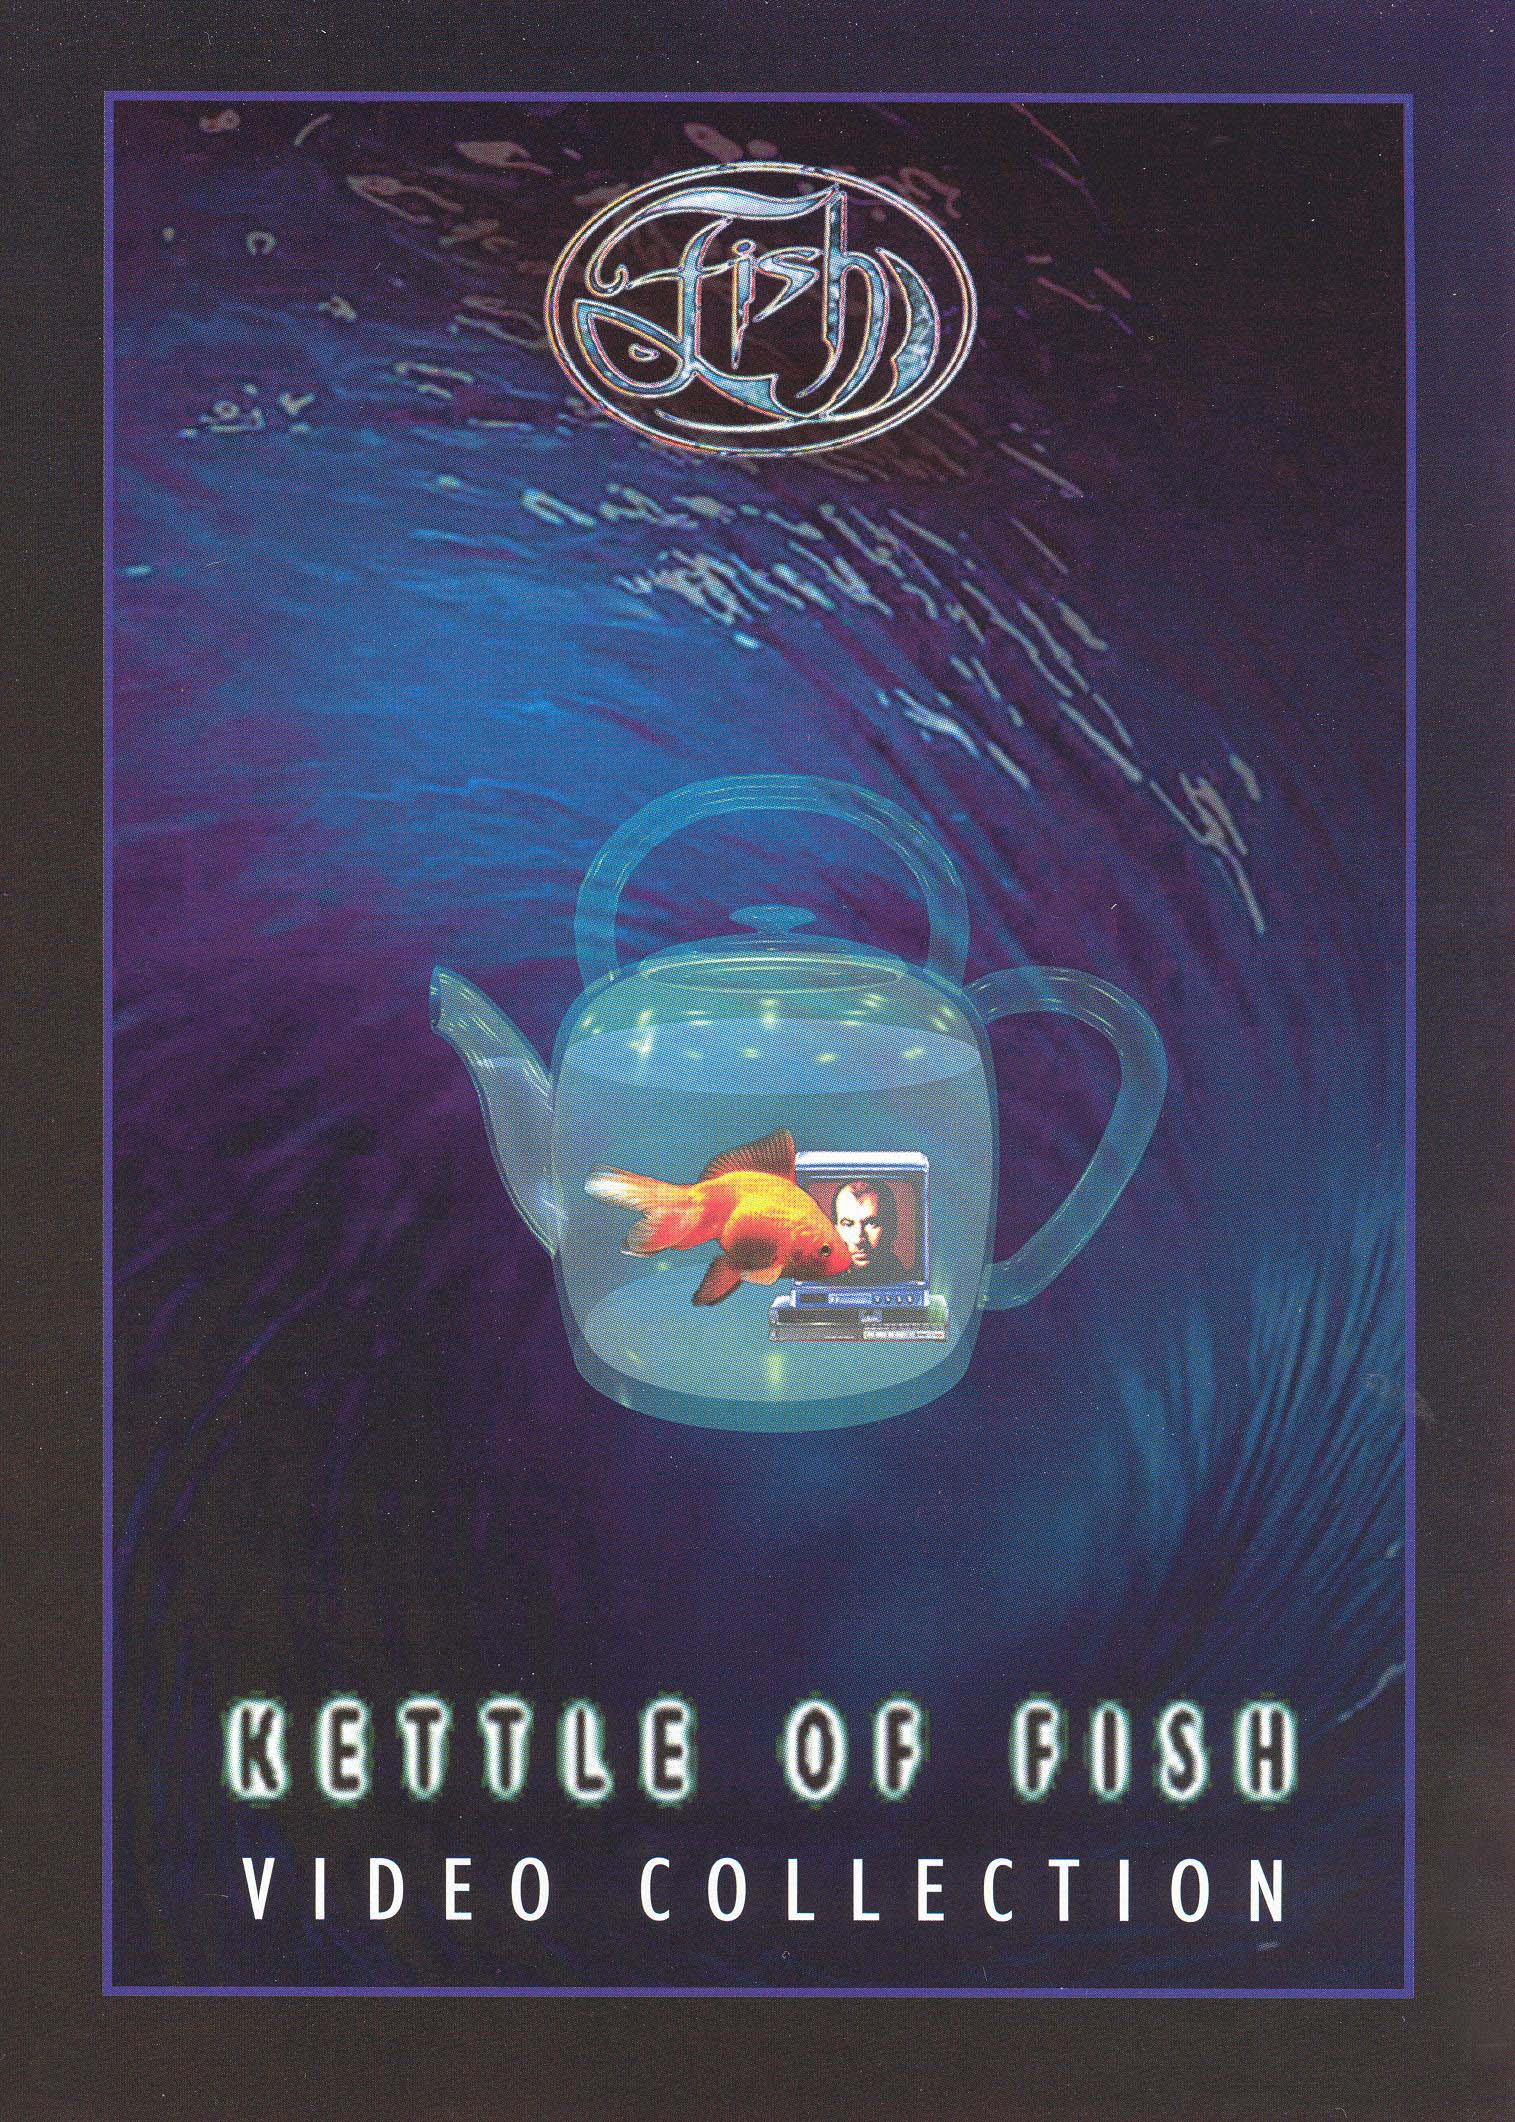 Fish: Kettle of Fish - Video Collection